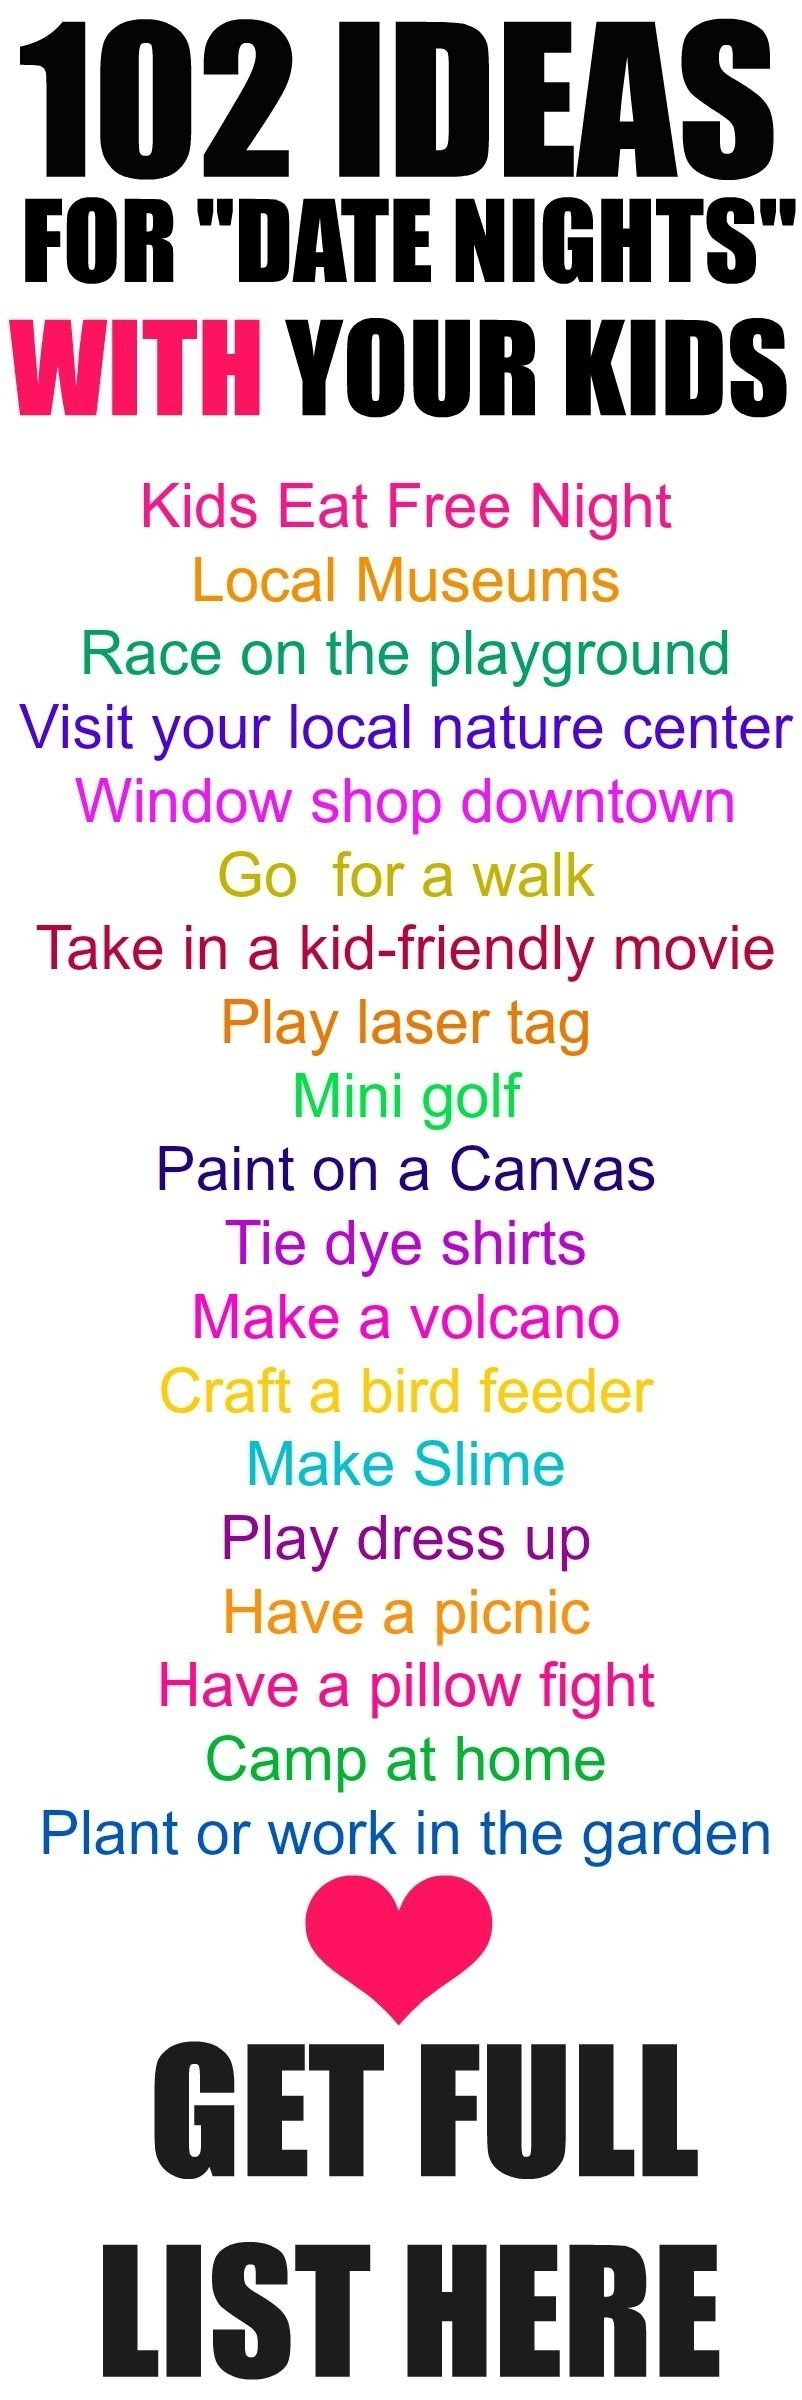 10 Awesome Fun Friday Night Date Ideas 102 date night ideas for your kids 102 curated ideas to enjoy 1 2020